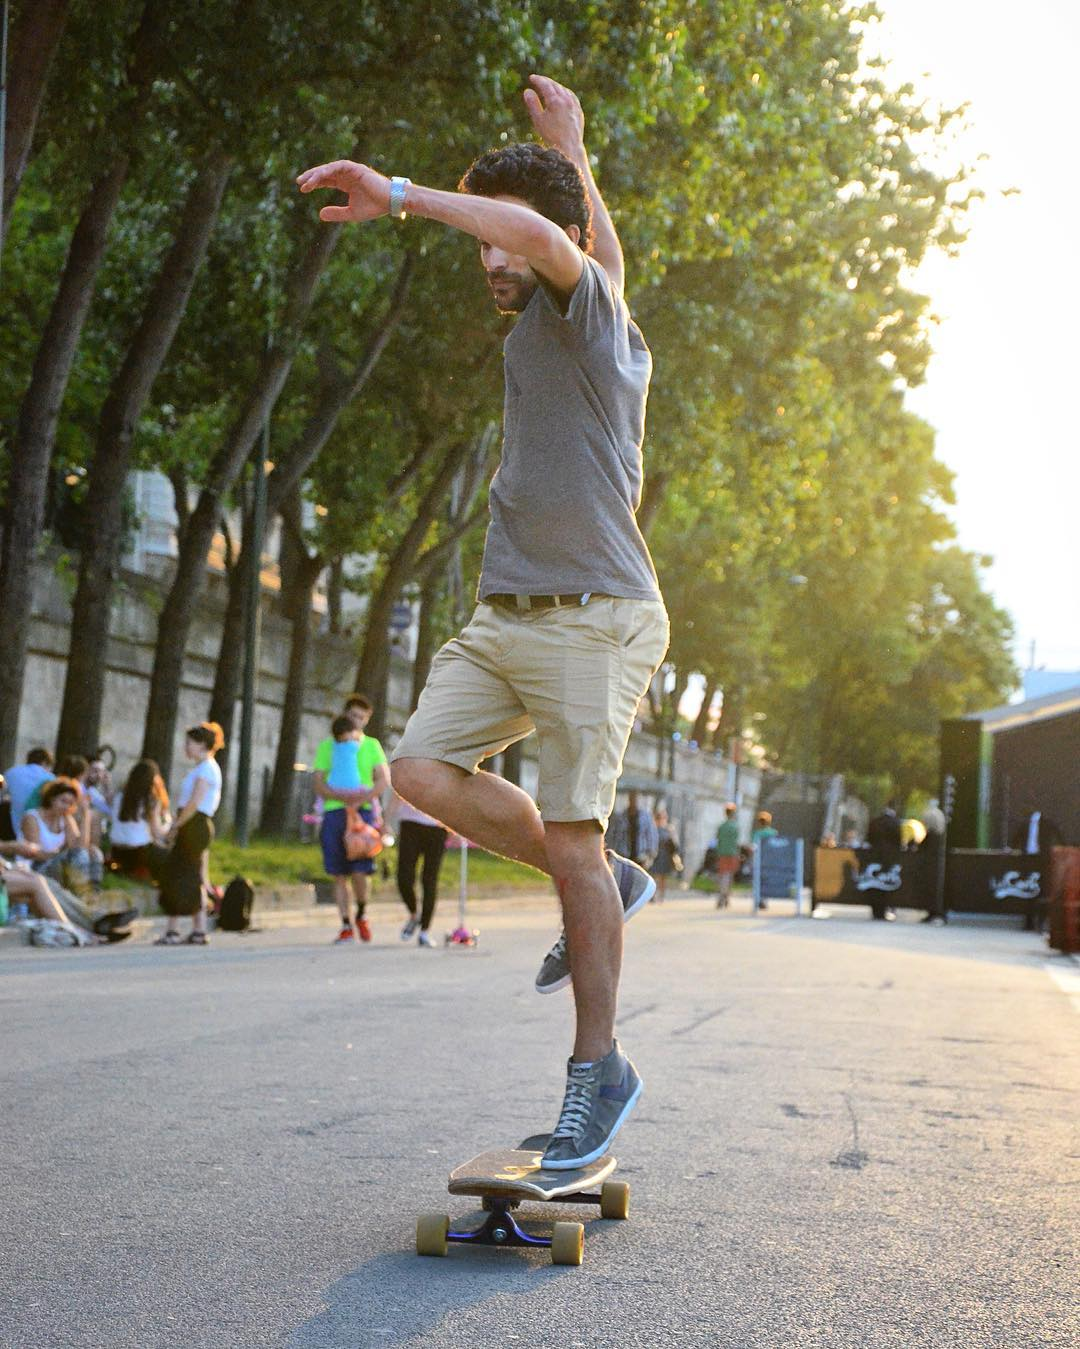 Light hearted and light footed, @lotfiwoodwalker let's his style flow during the evening light.  #paristrucks